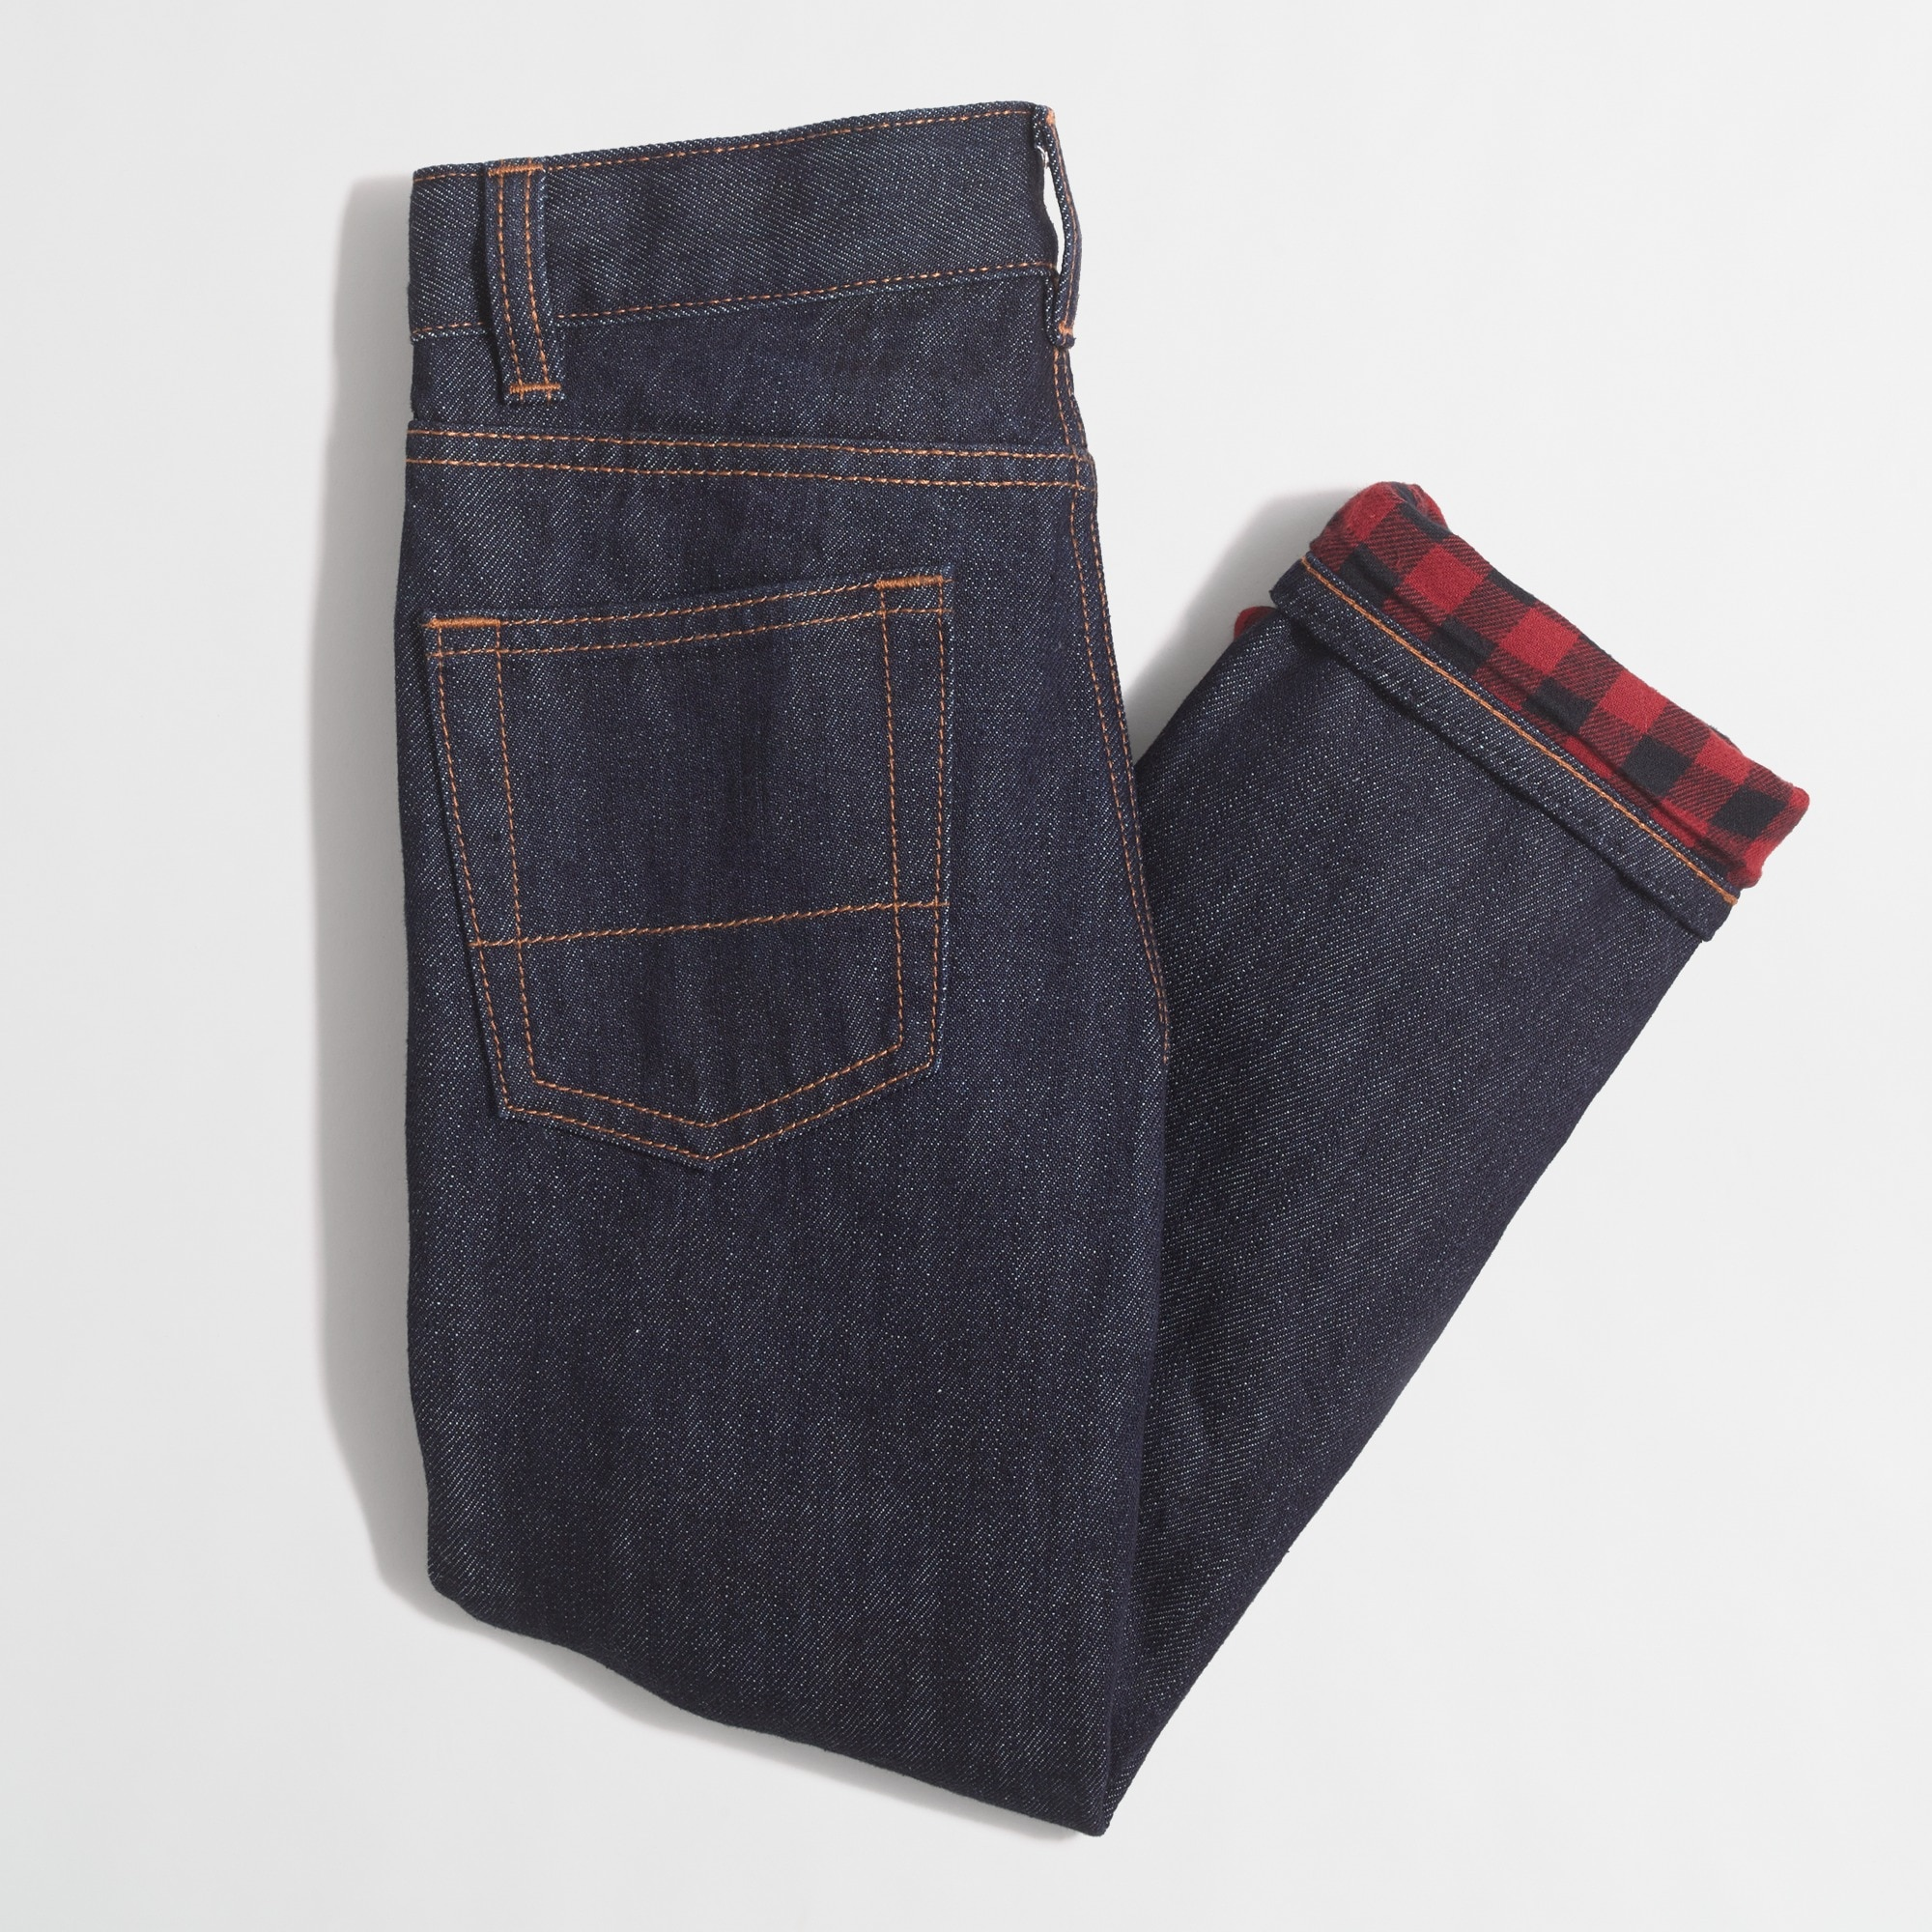 Image 2 for Boys' flannel-lined jeans